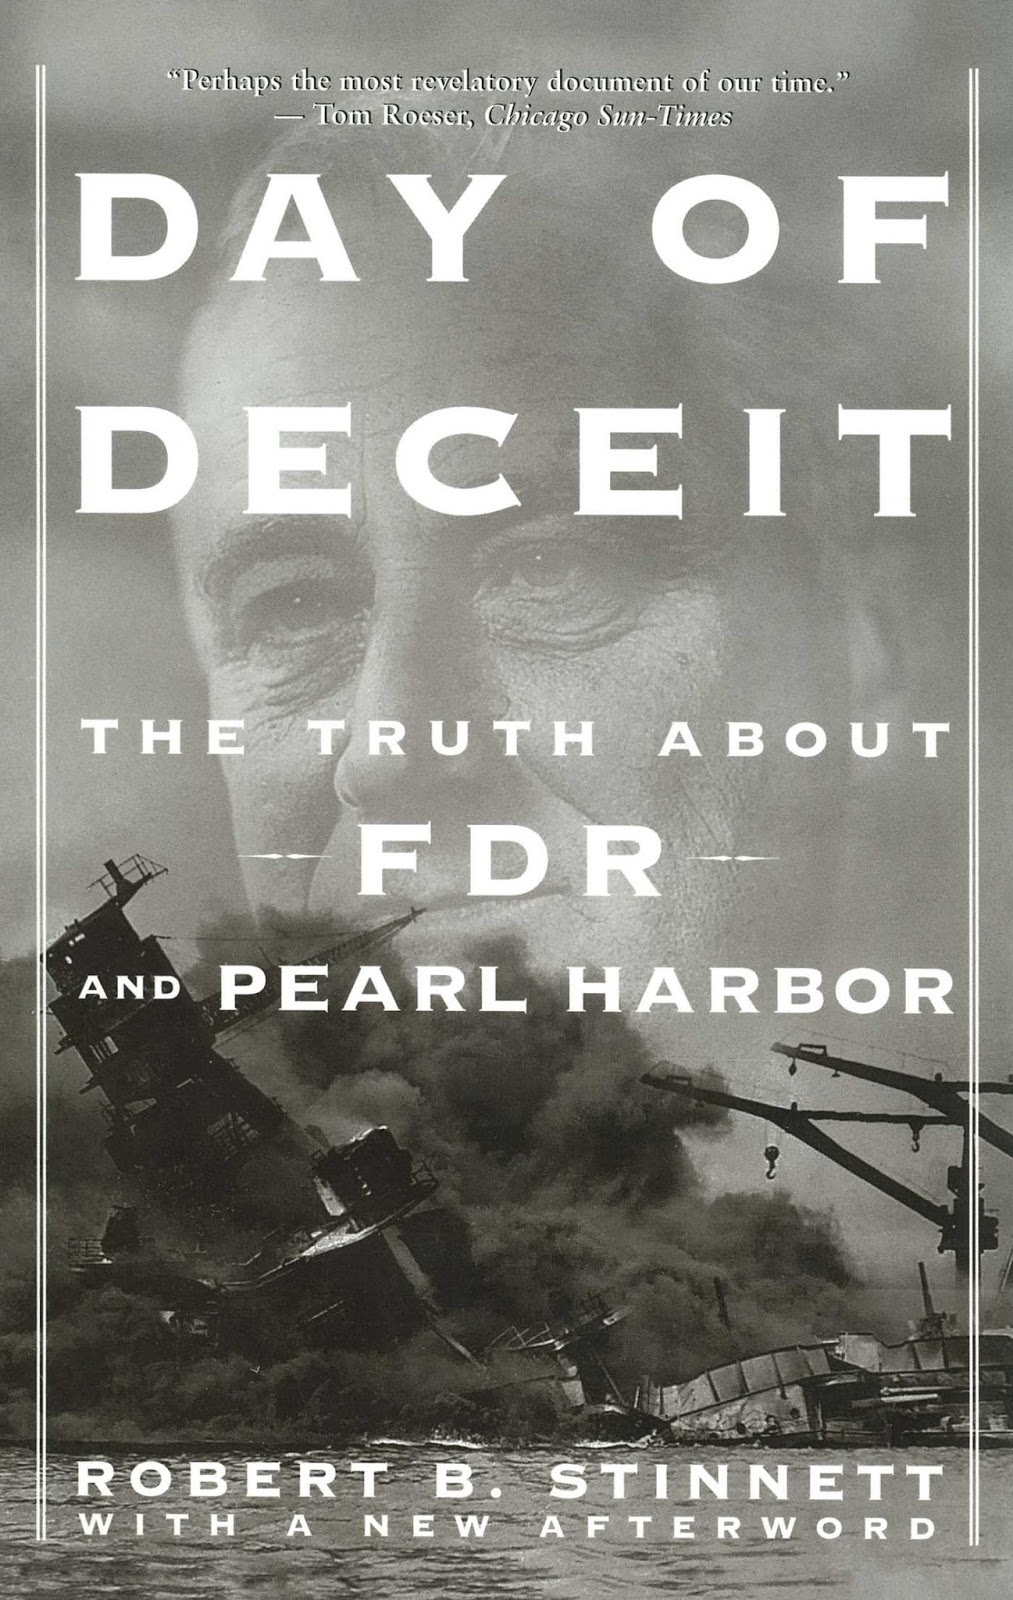 pearl harbor not a surprise essay Rhetorical analysis on roosevelt's speech about pearl regarding the surprise attack on pearl harbor on pearl harbor a comprehensive essay brian.